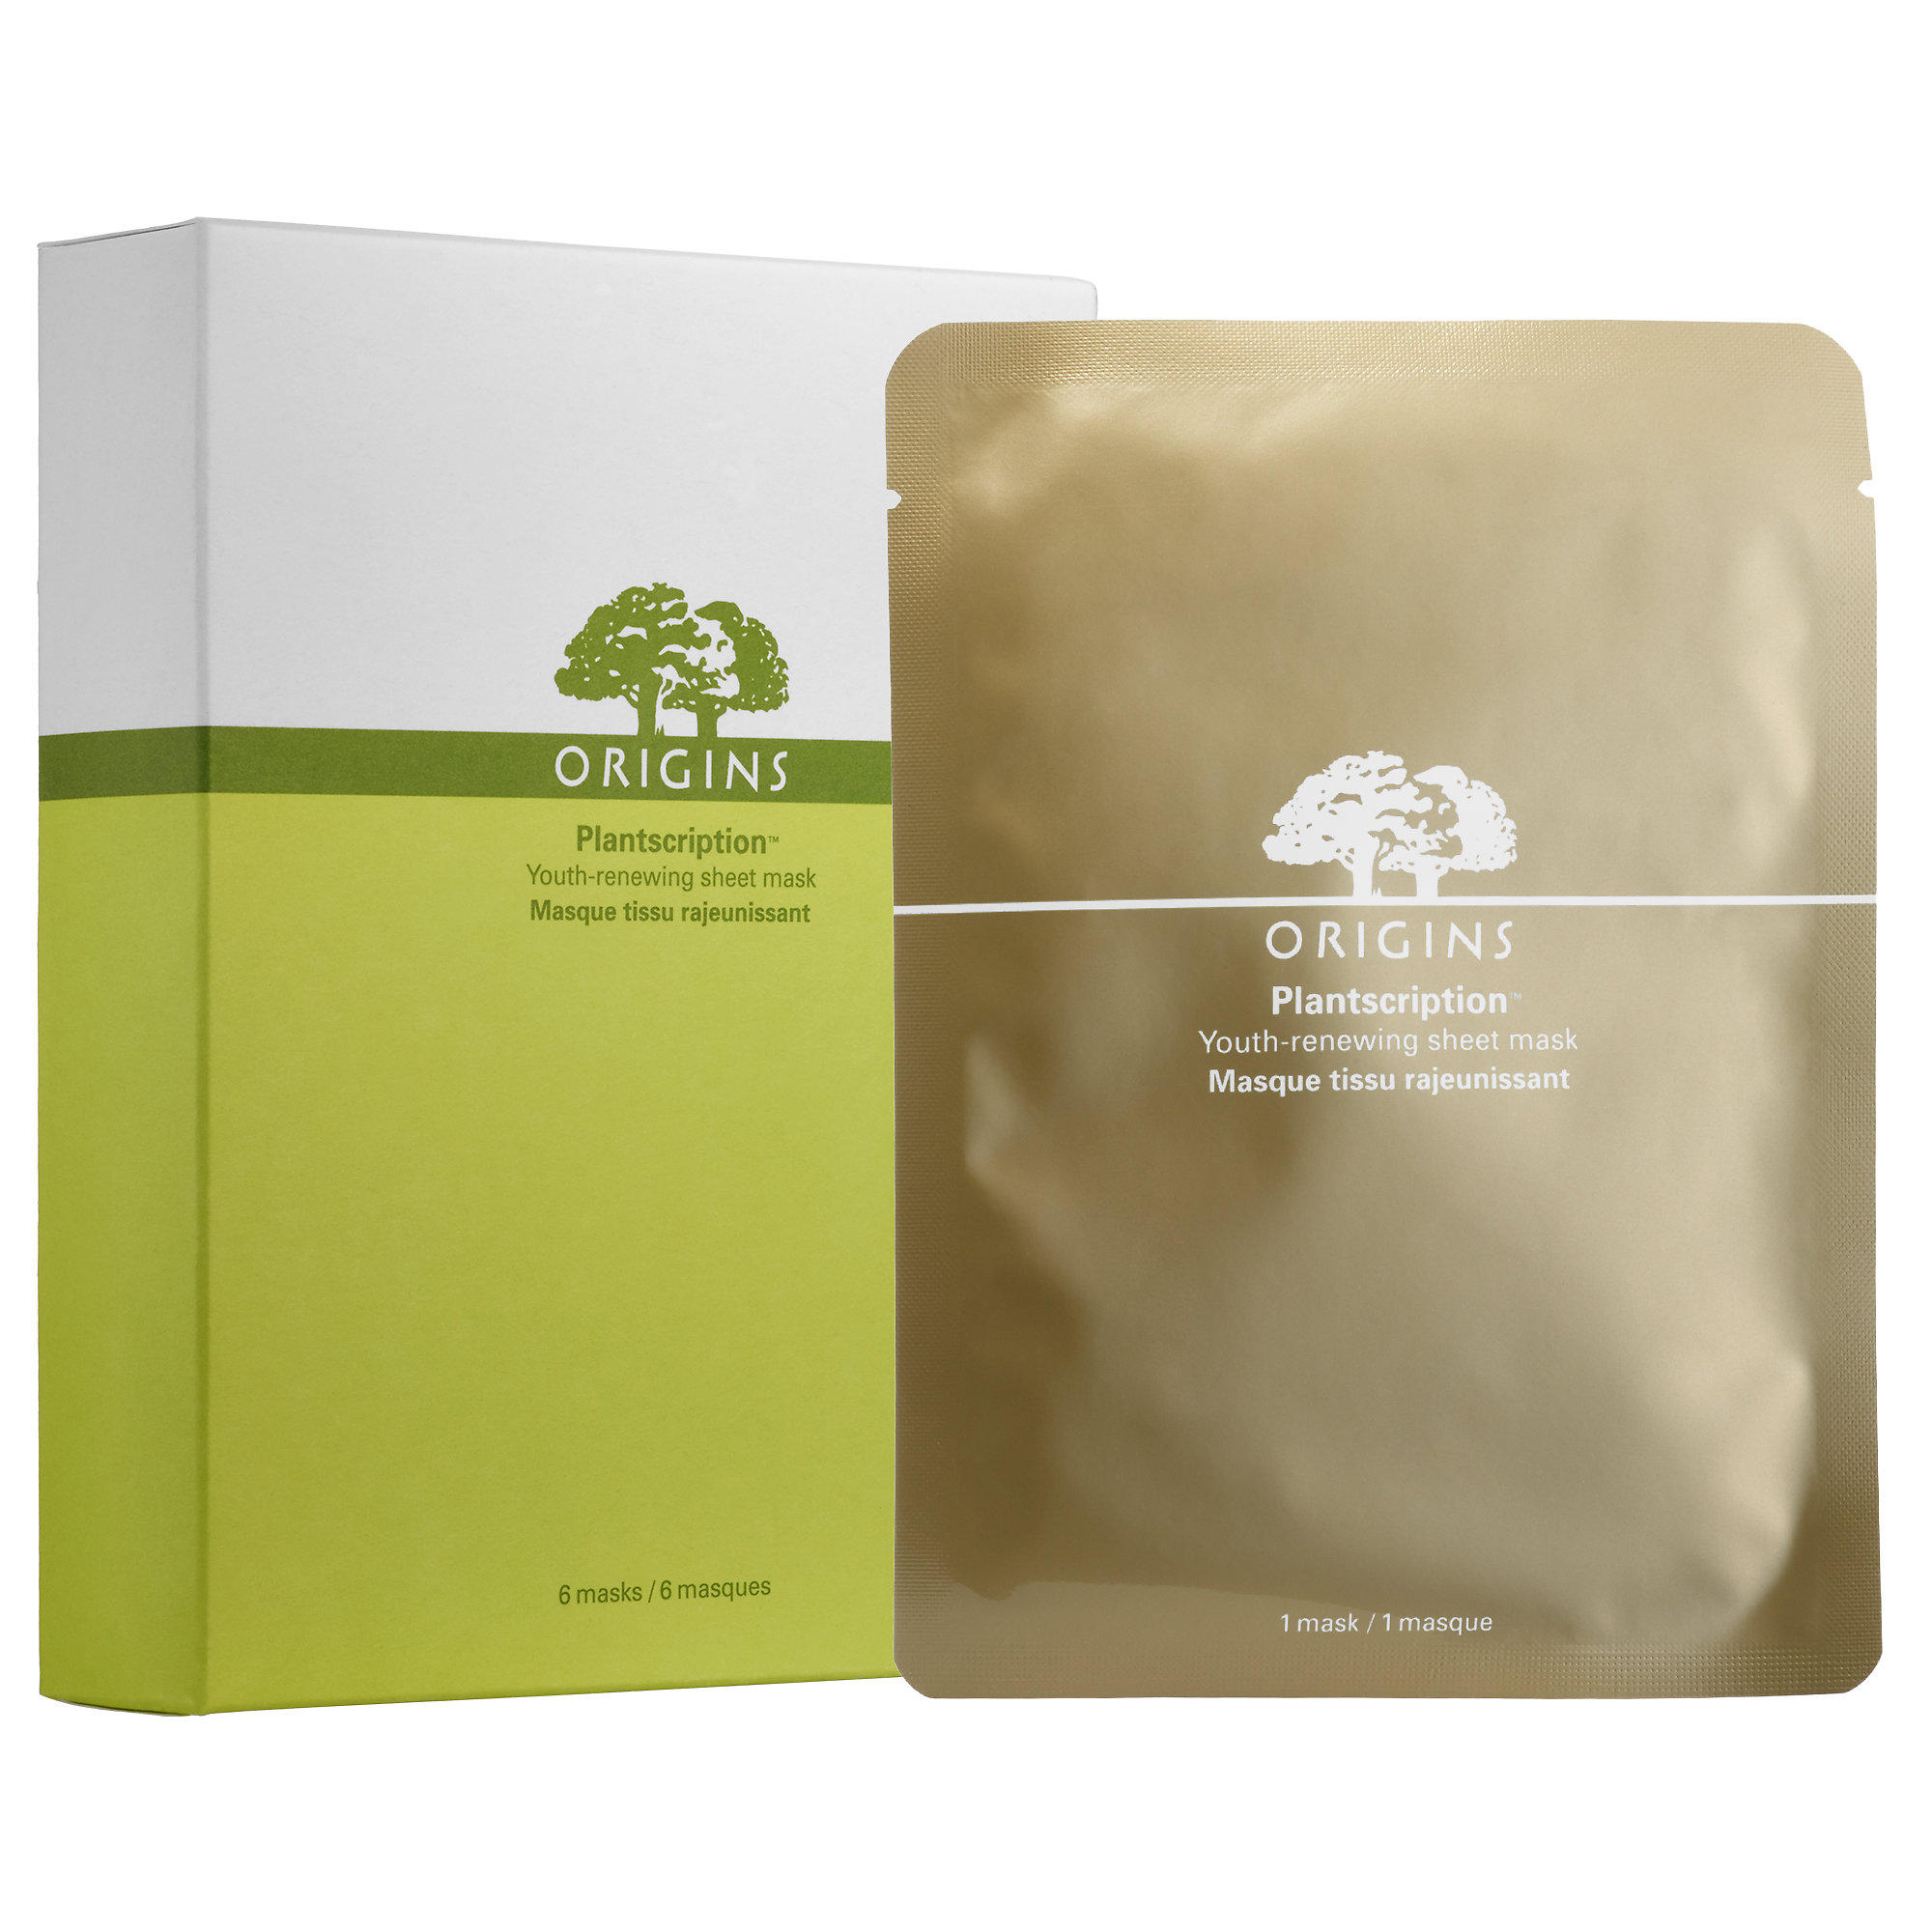 New ReleaseOrigins launched New PLANTSCRIPTION Youth-Renewing Sheet Mask